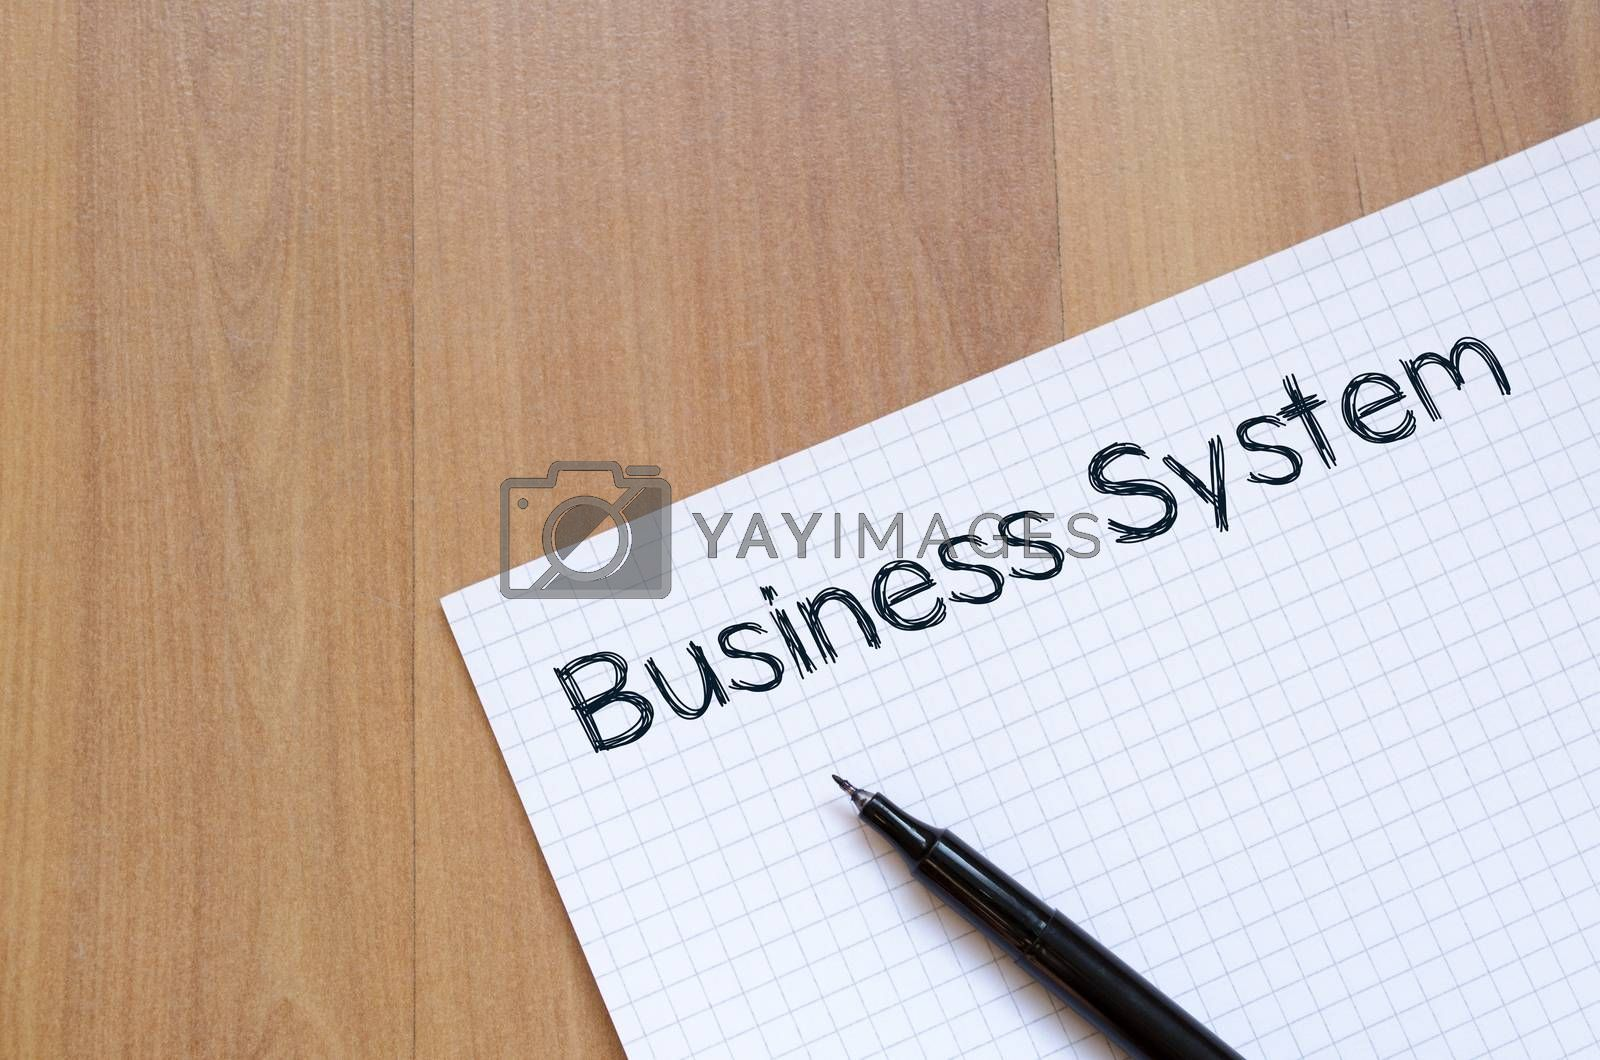 Business system write on notebook by eenevski